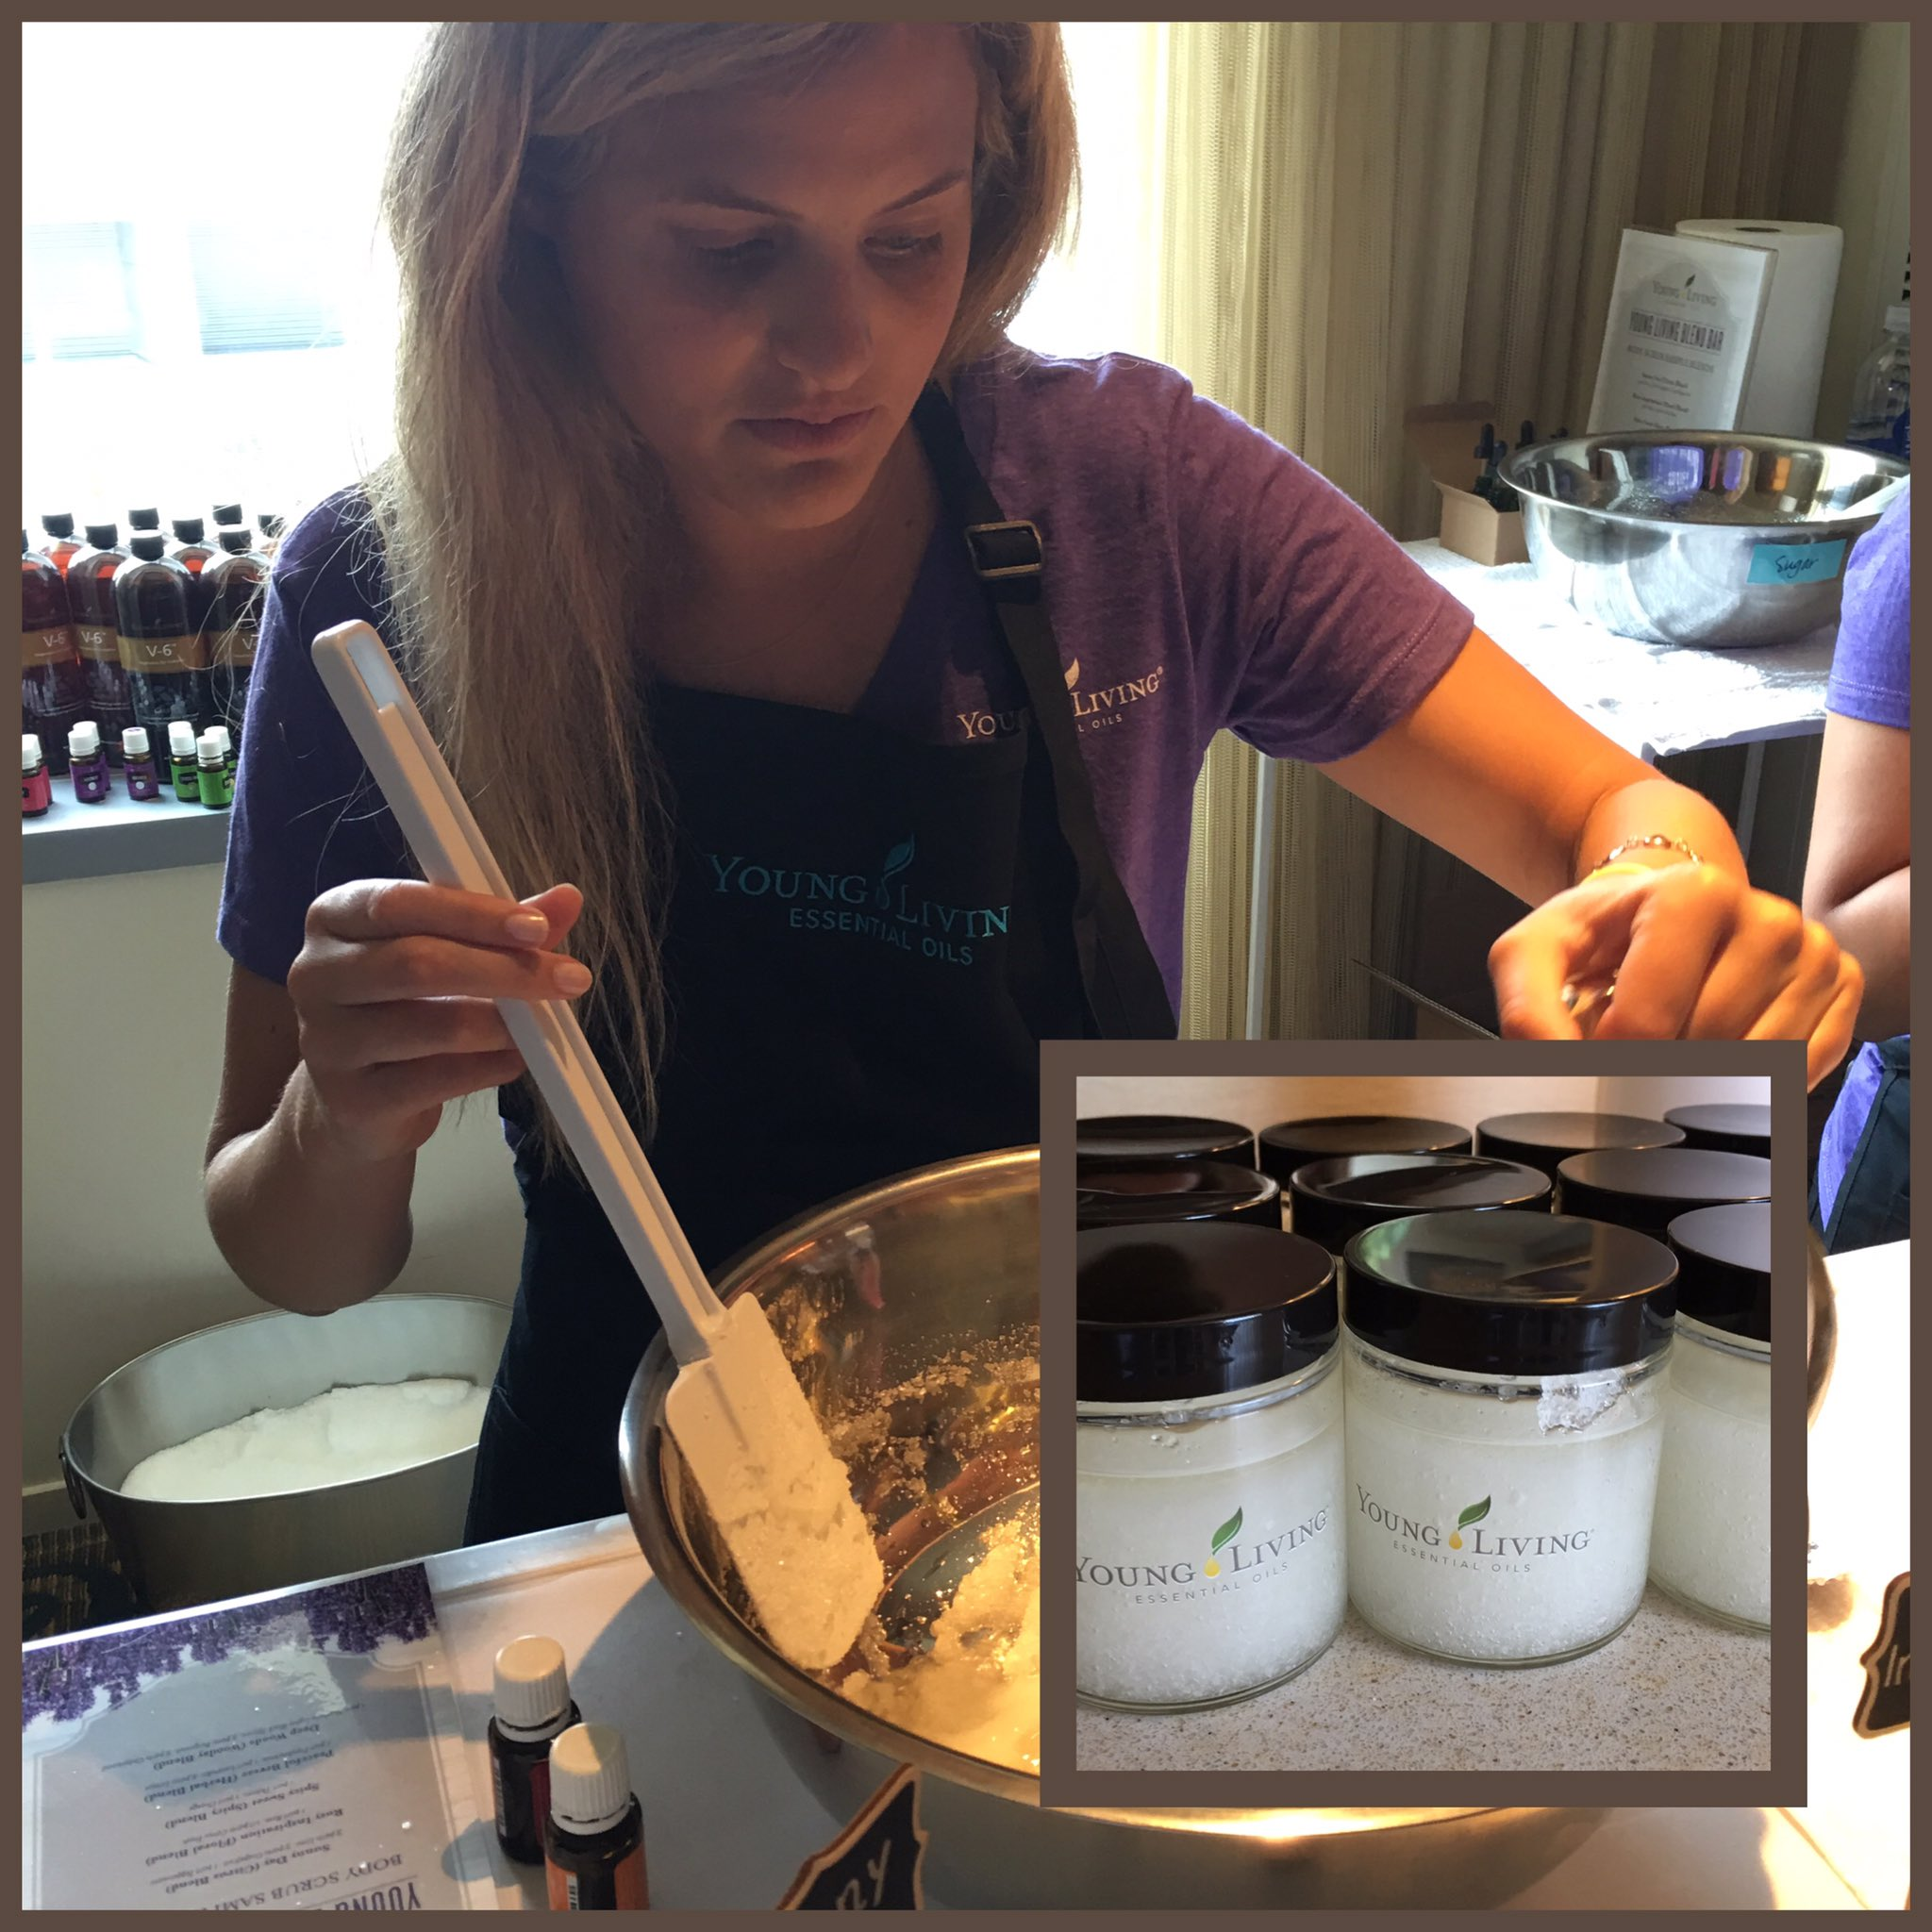 Create your own scrub (and more!) with @younglivingeo in suite 748. #blogher16 https://t.co/h9EDl6h9xj